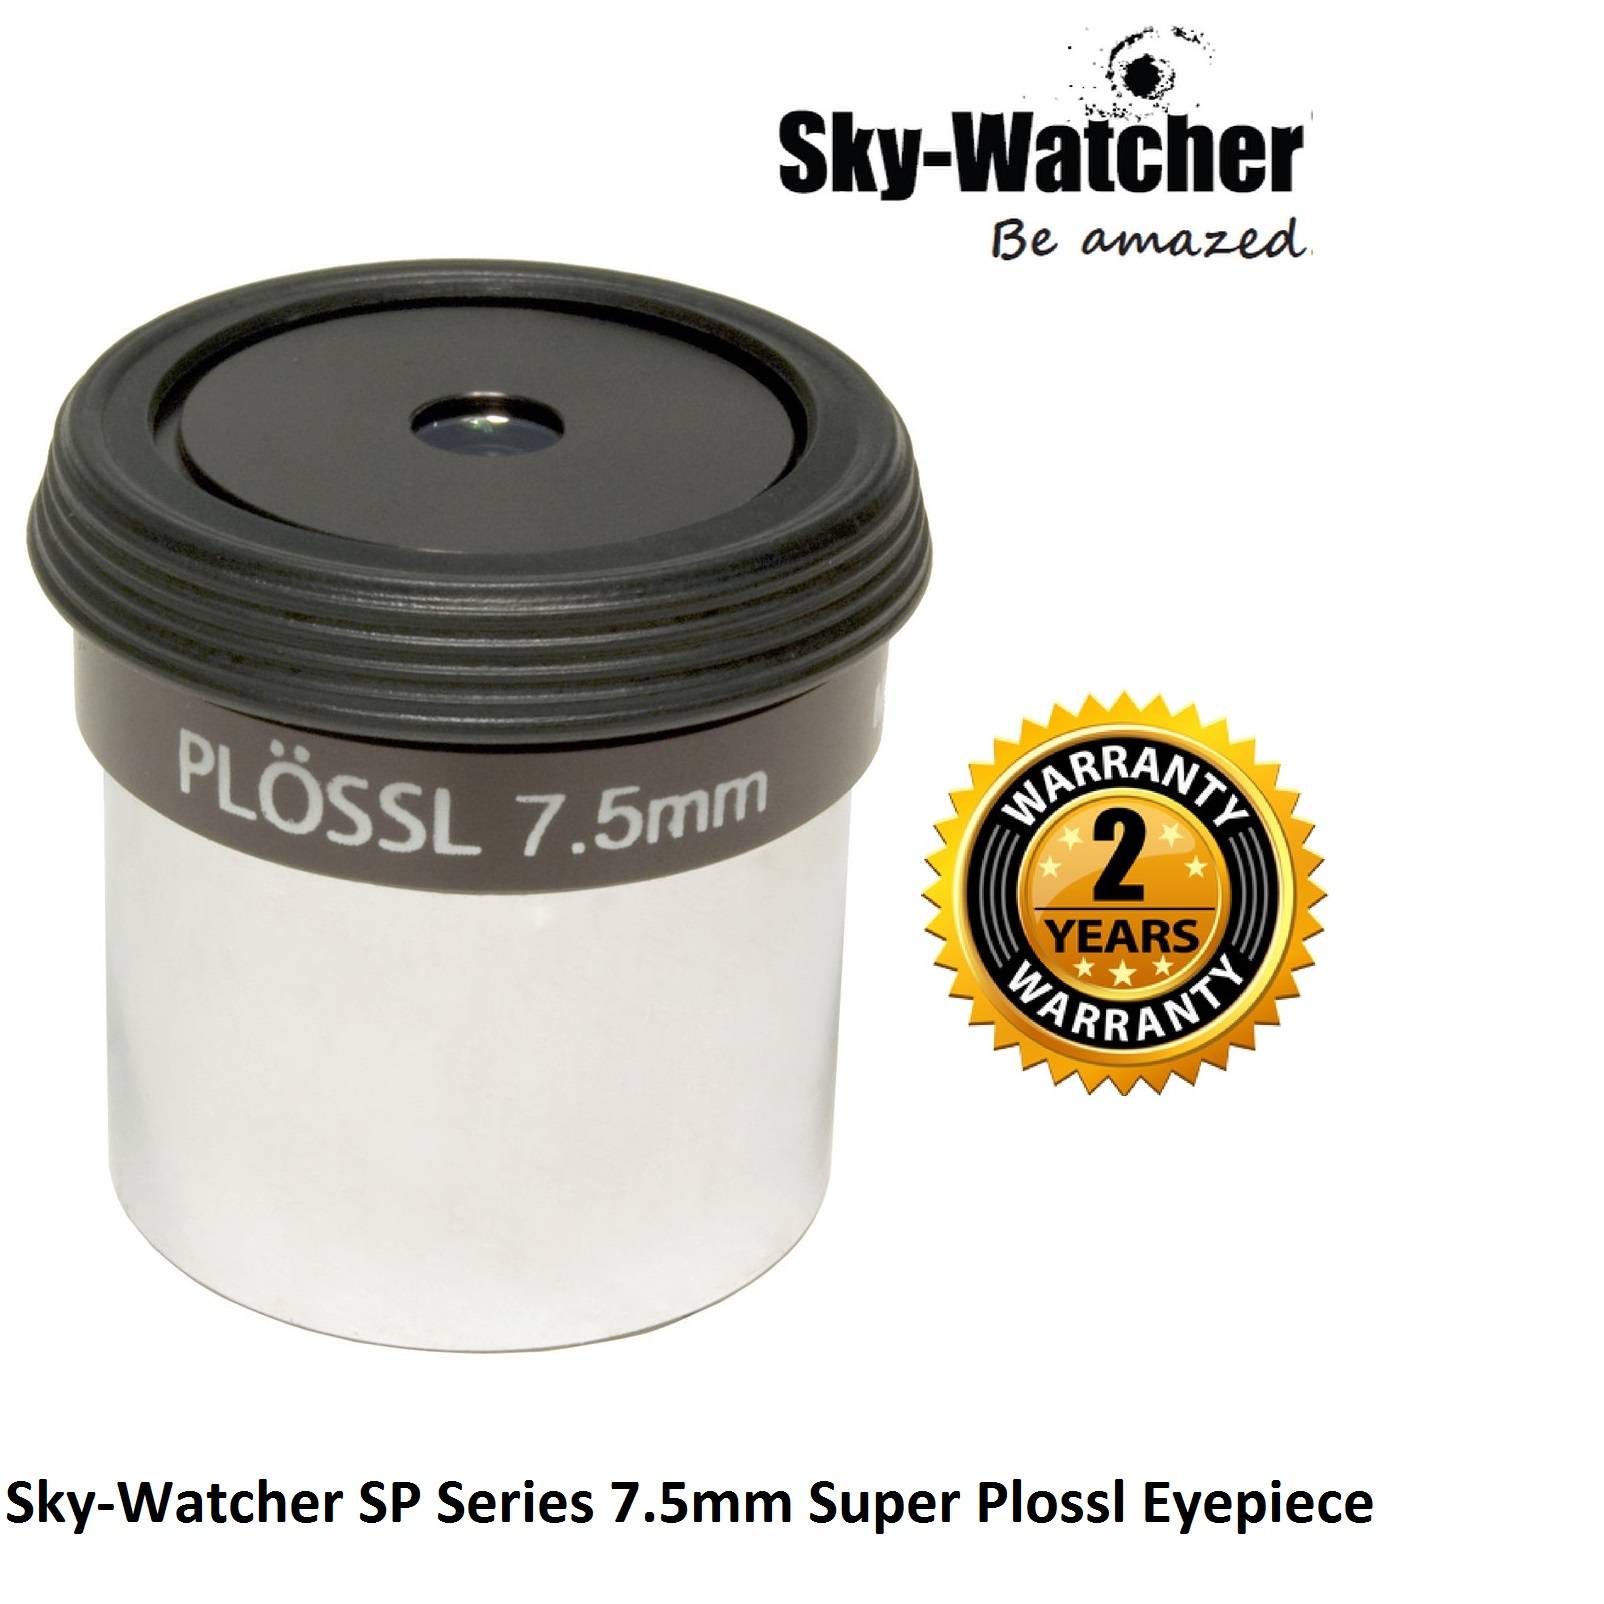 Sky-Watcher SP Series 7.5mm Super Plossl Eyepiece